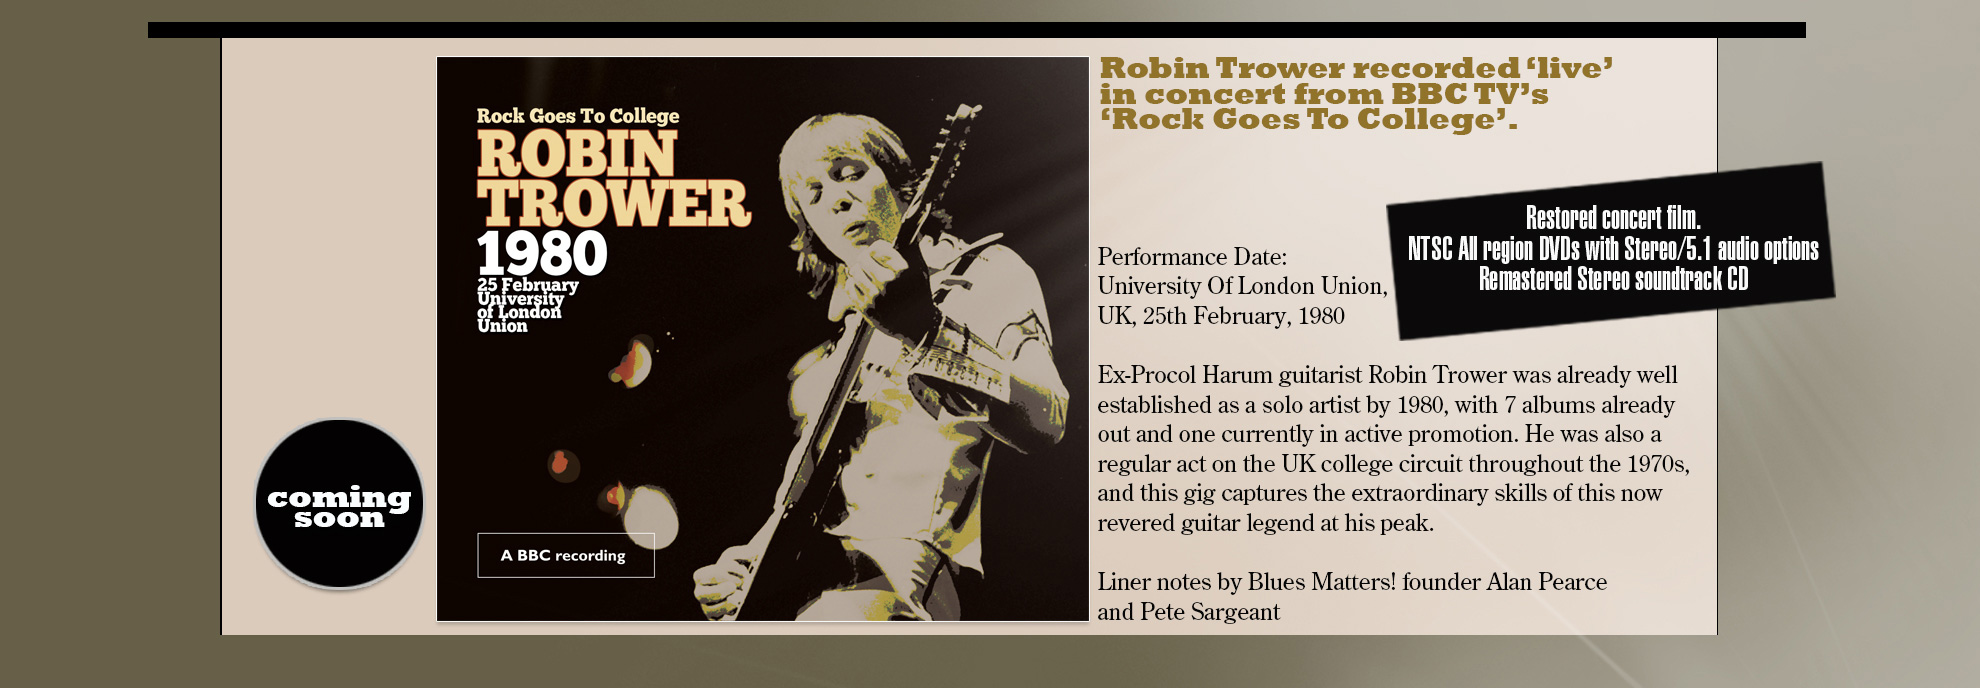 Robin-Trower-new-banner-size